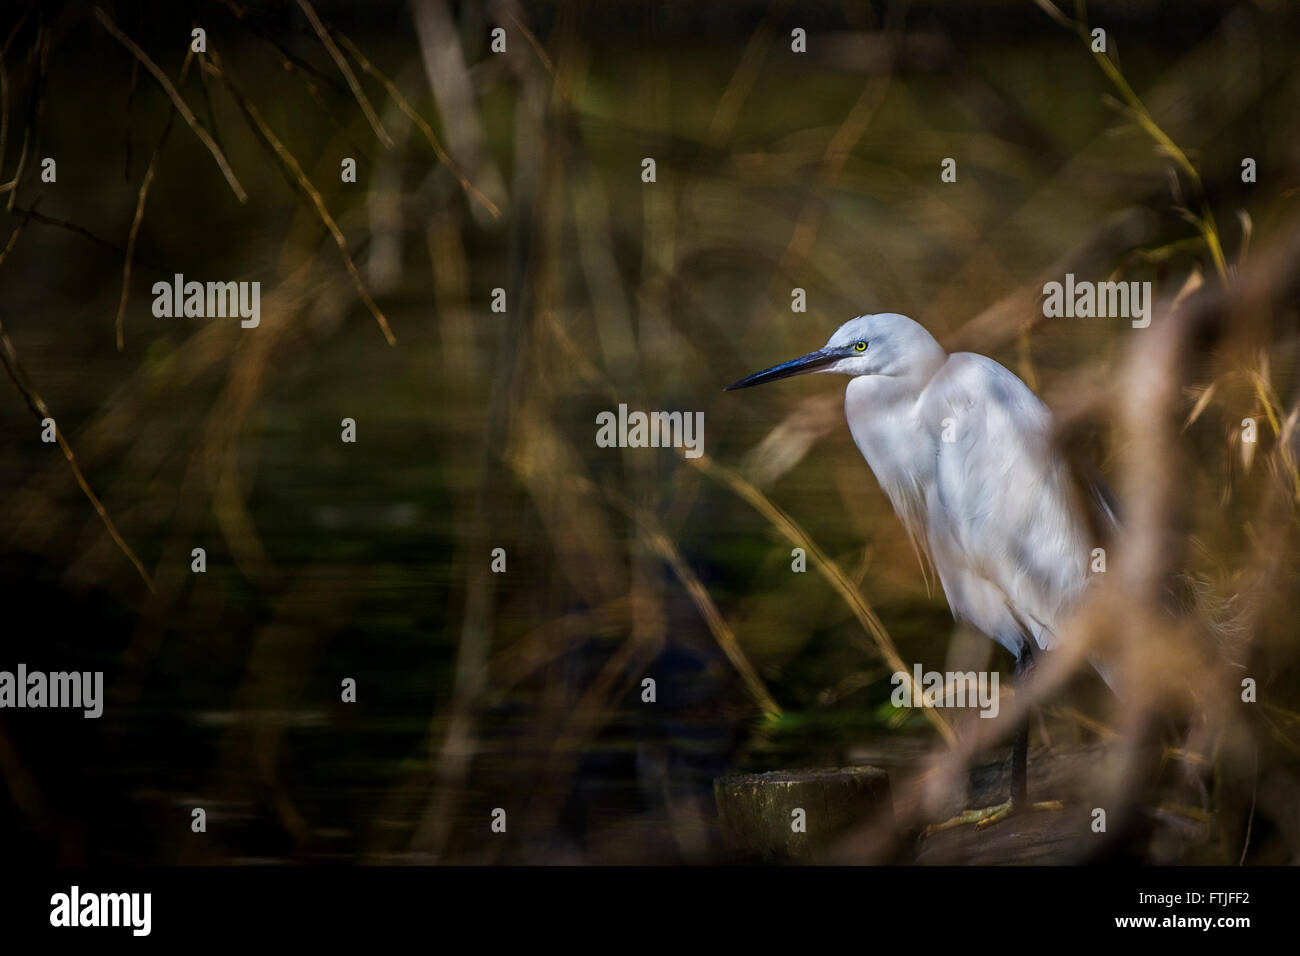 A Little Egret perched on the banks of a lake in Newquay, Cornwall. - Stock Image